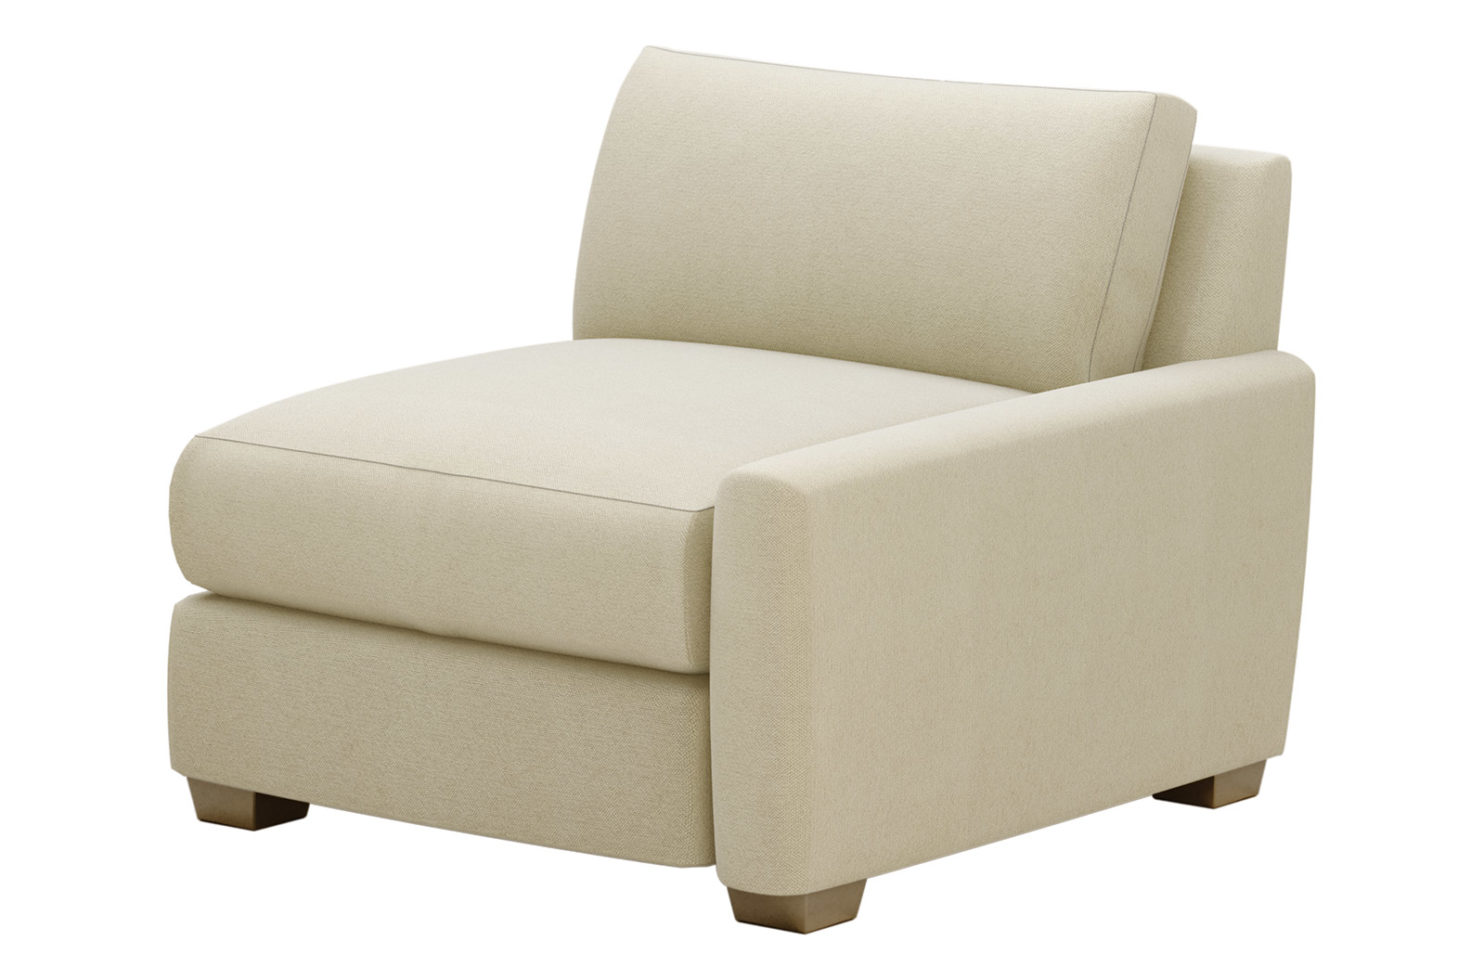 fizz imperial one arm chair 105FT004P2 C RAF